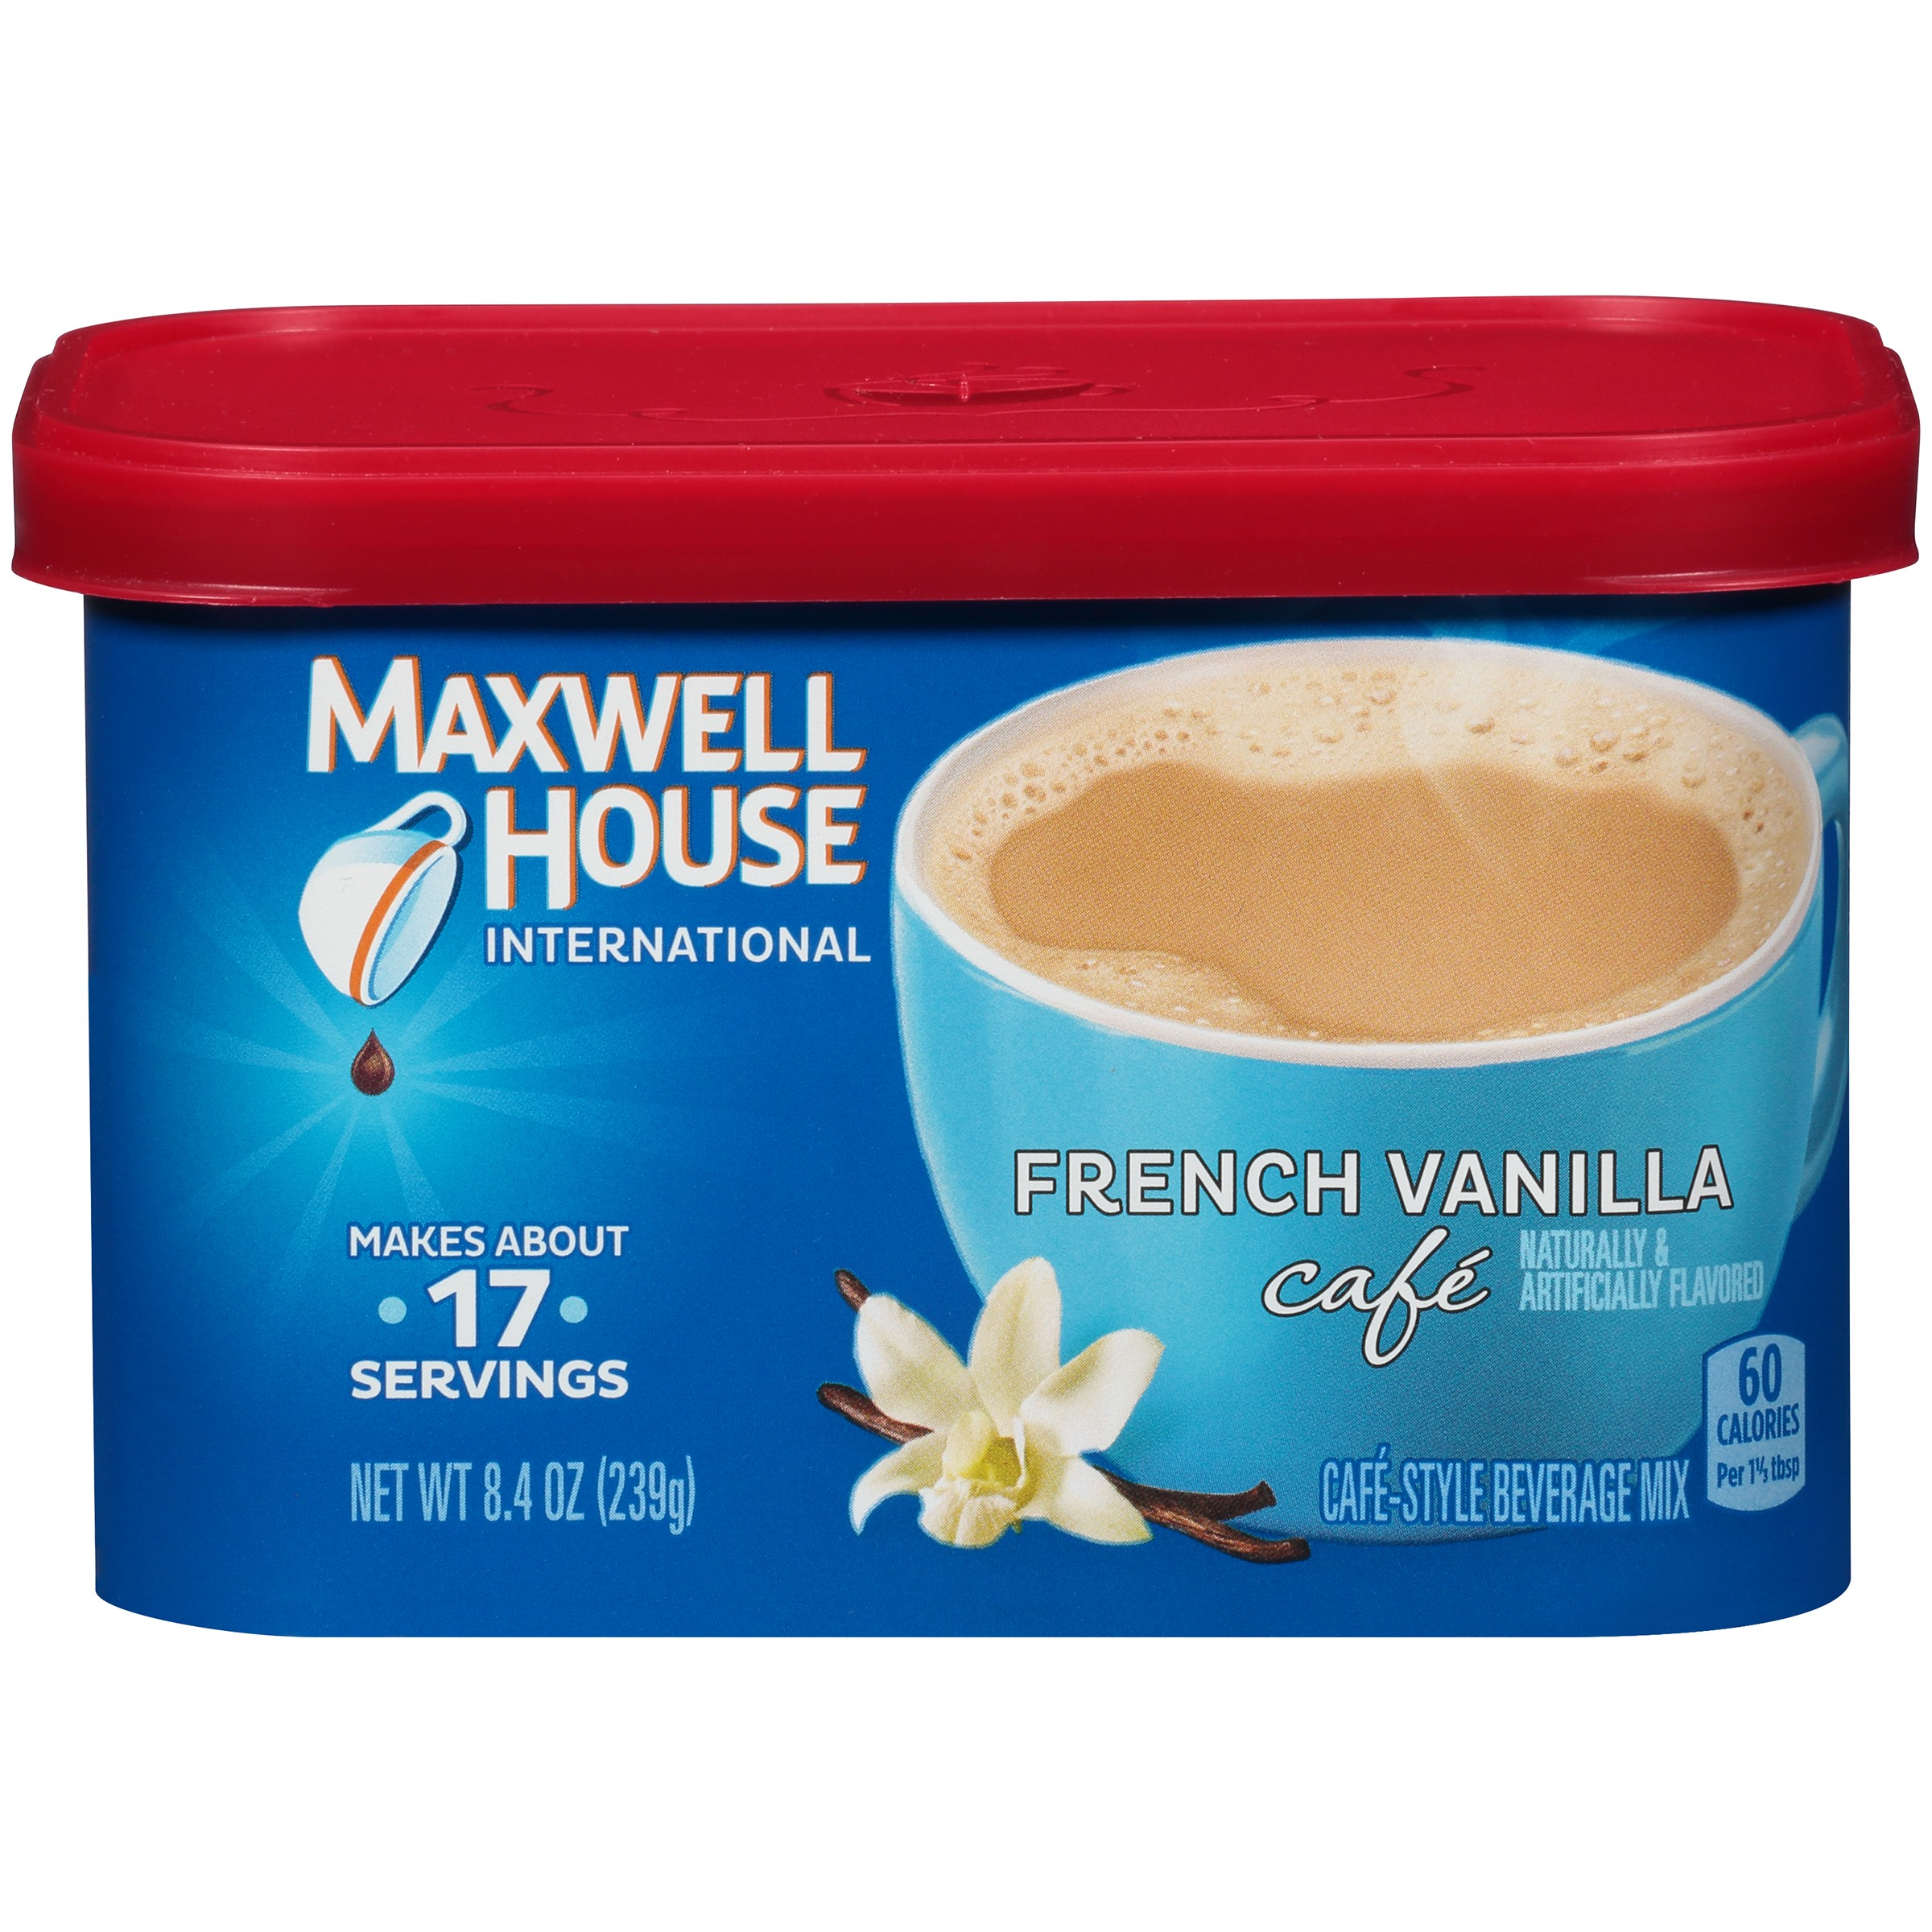 Maxwell House International French Vanilla Café-Style Beverage Mix 8.4 oz. Tub